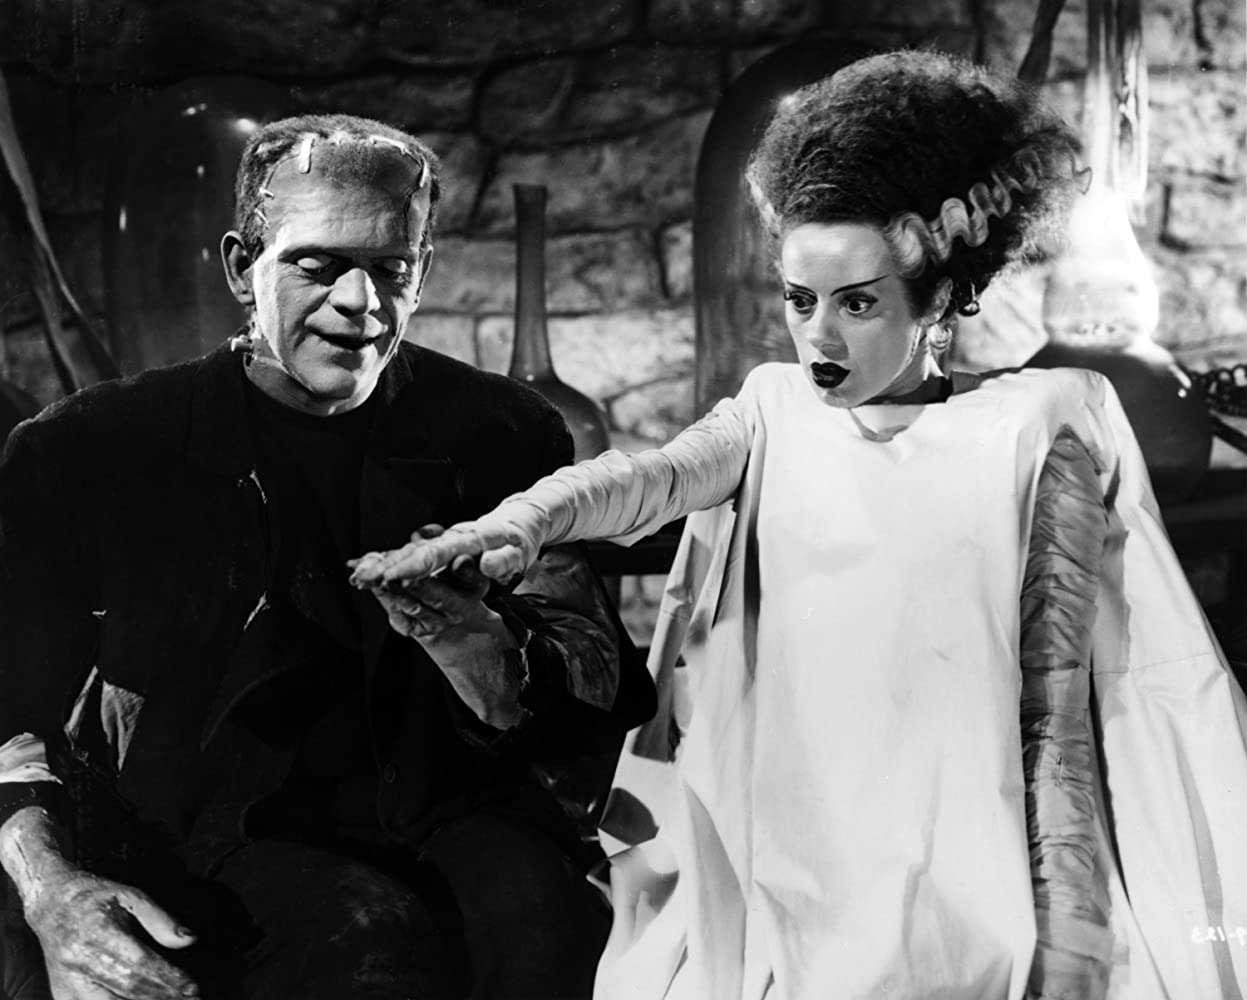 The-Bride-of-Frankenstein-1935